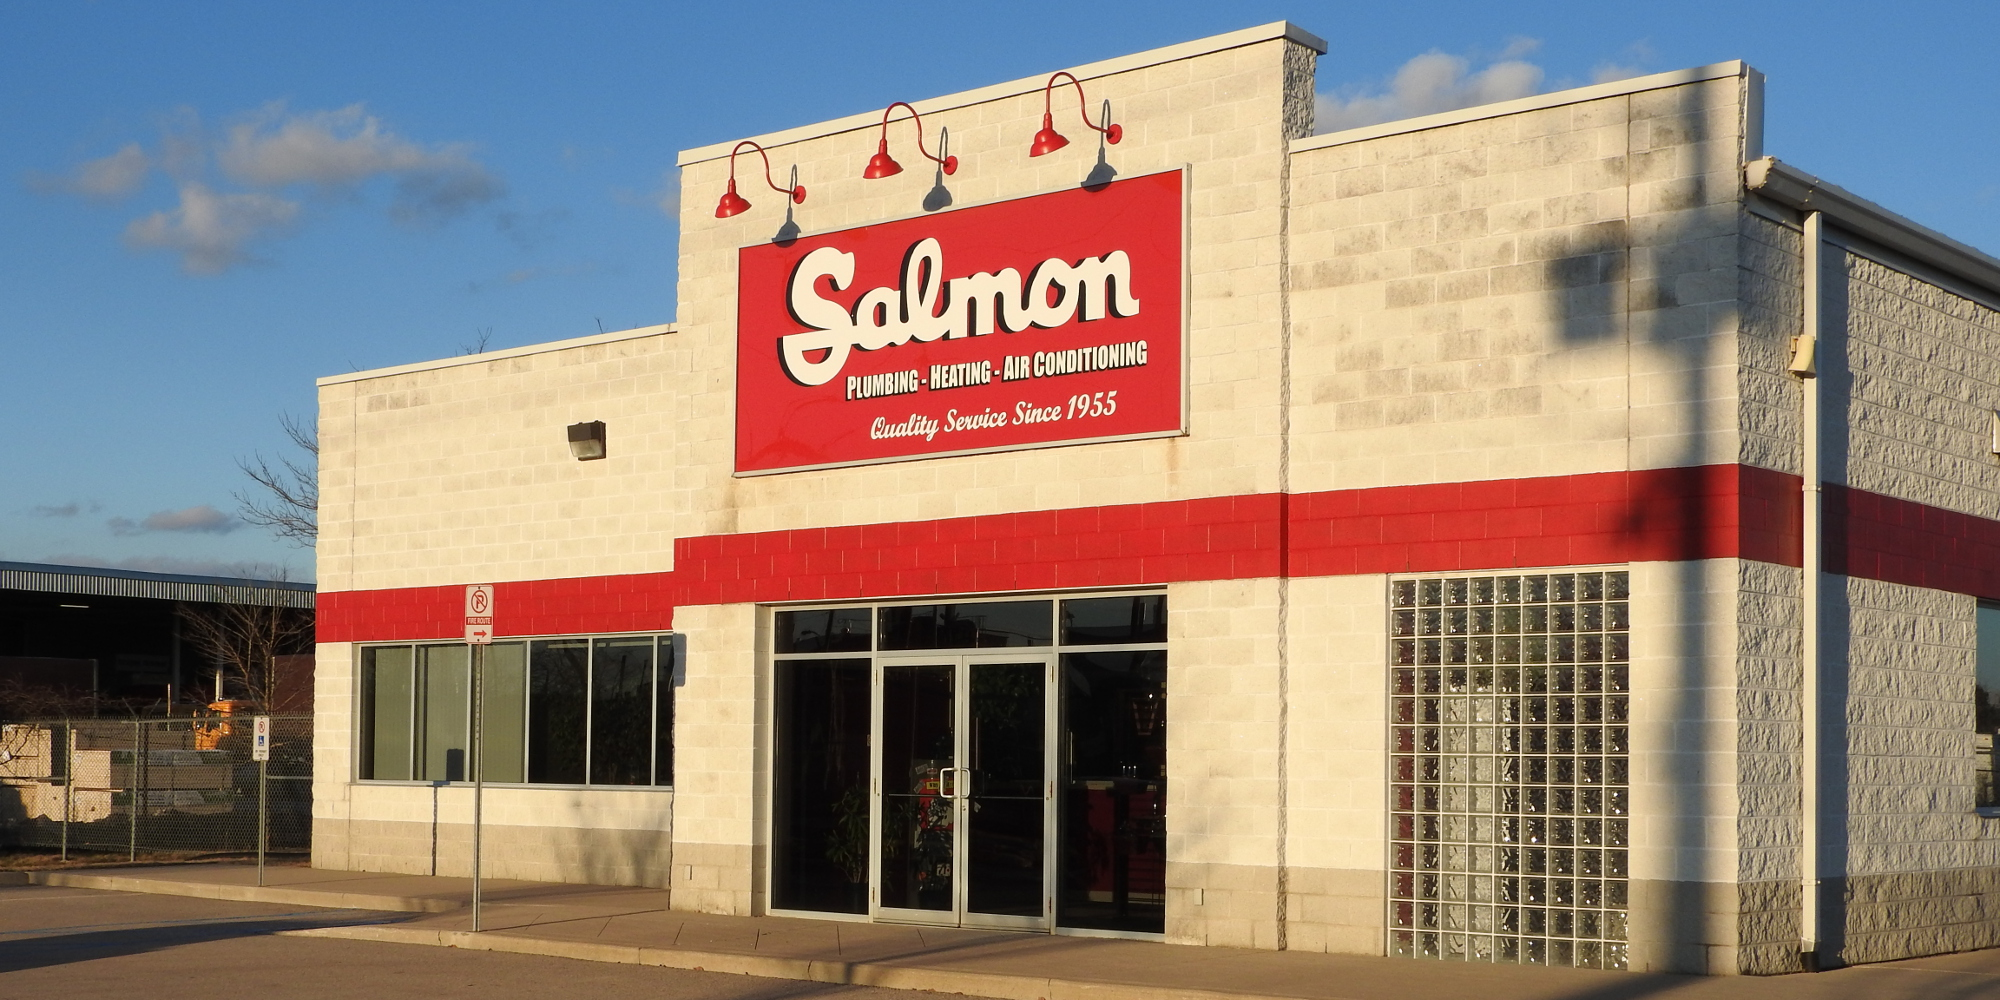 Salmon Plumbing & Heating - Shop